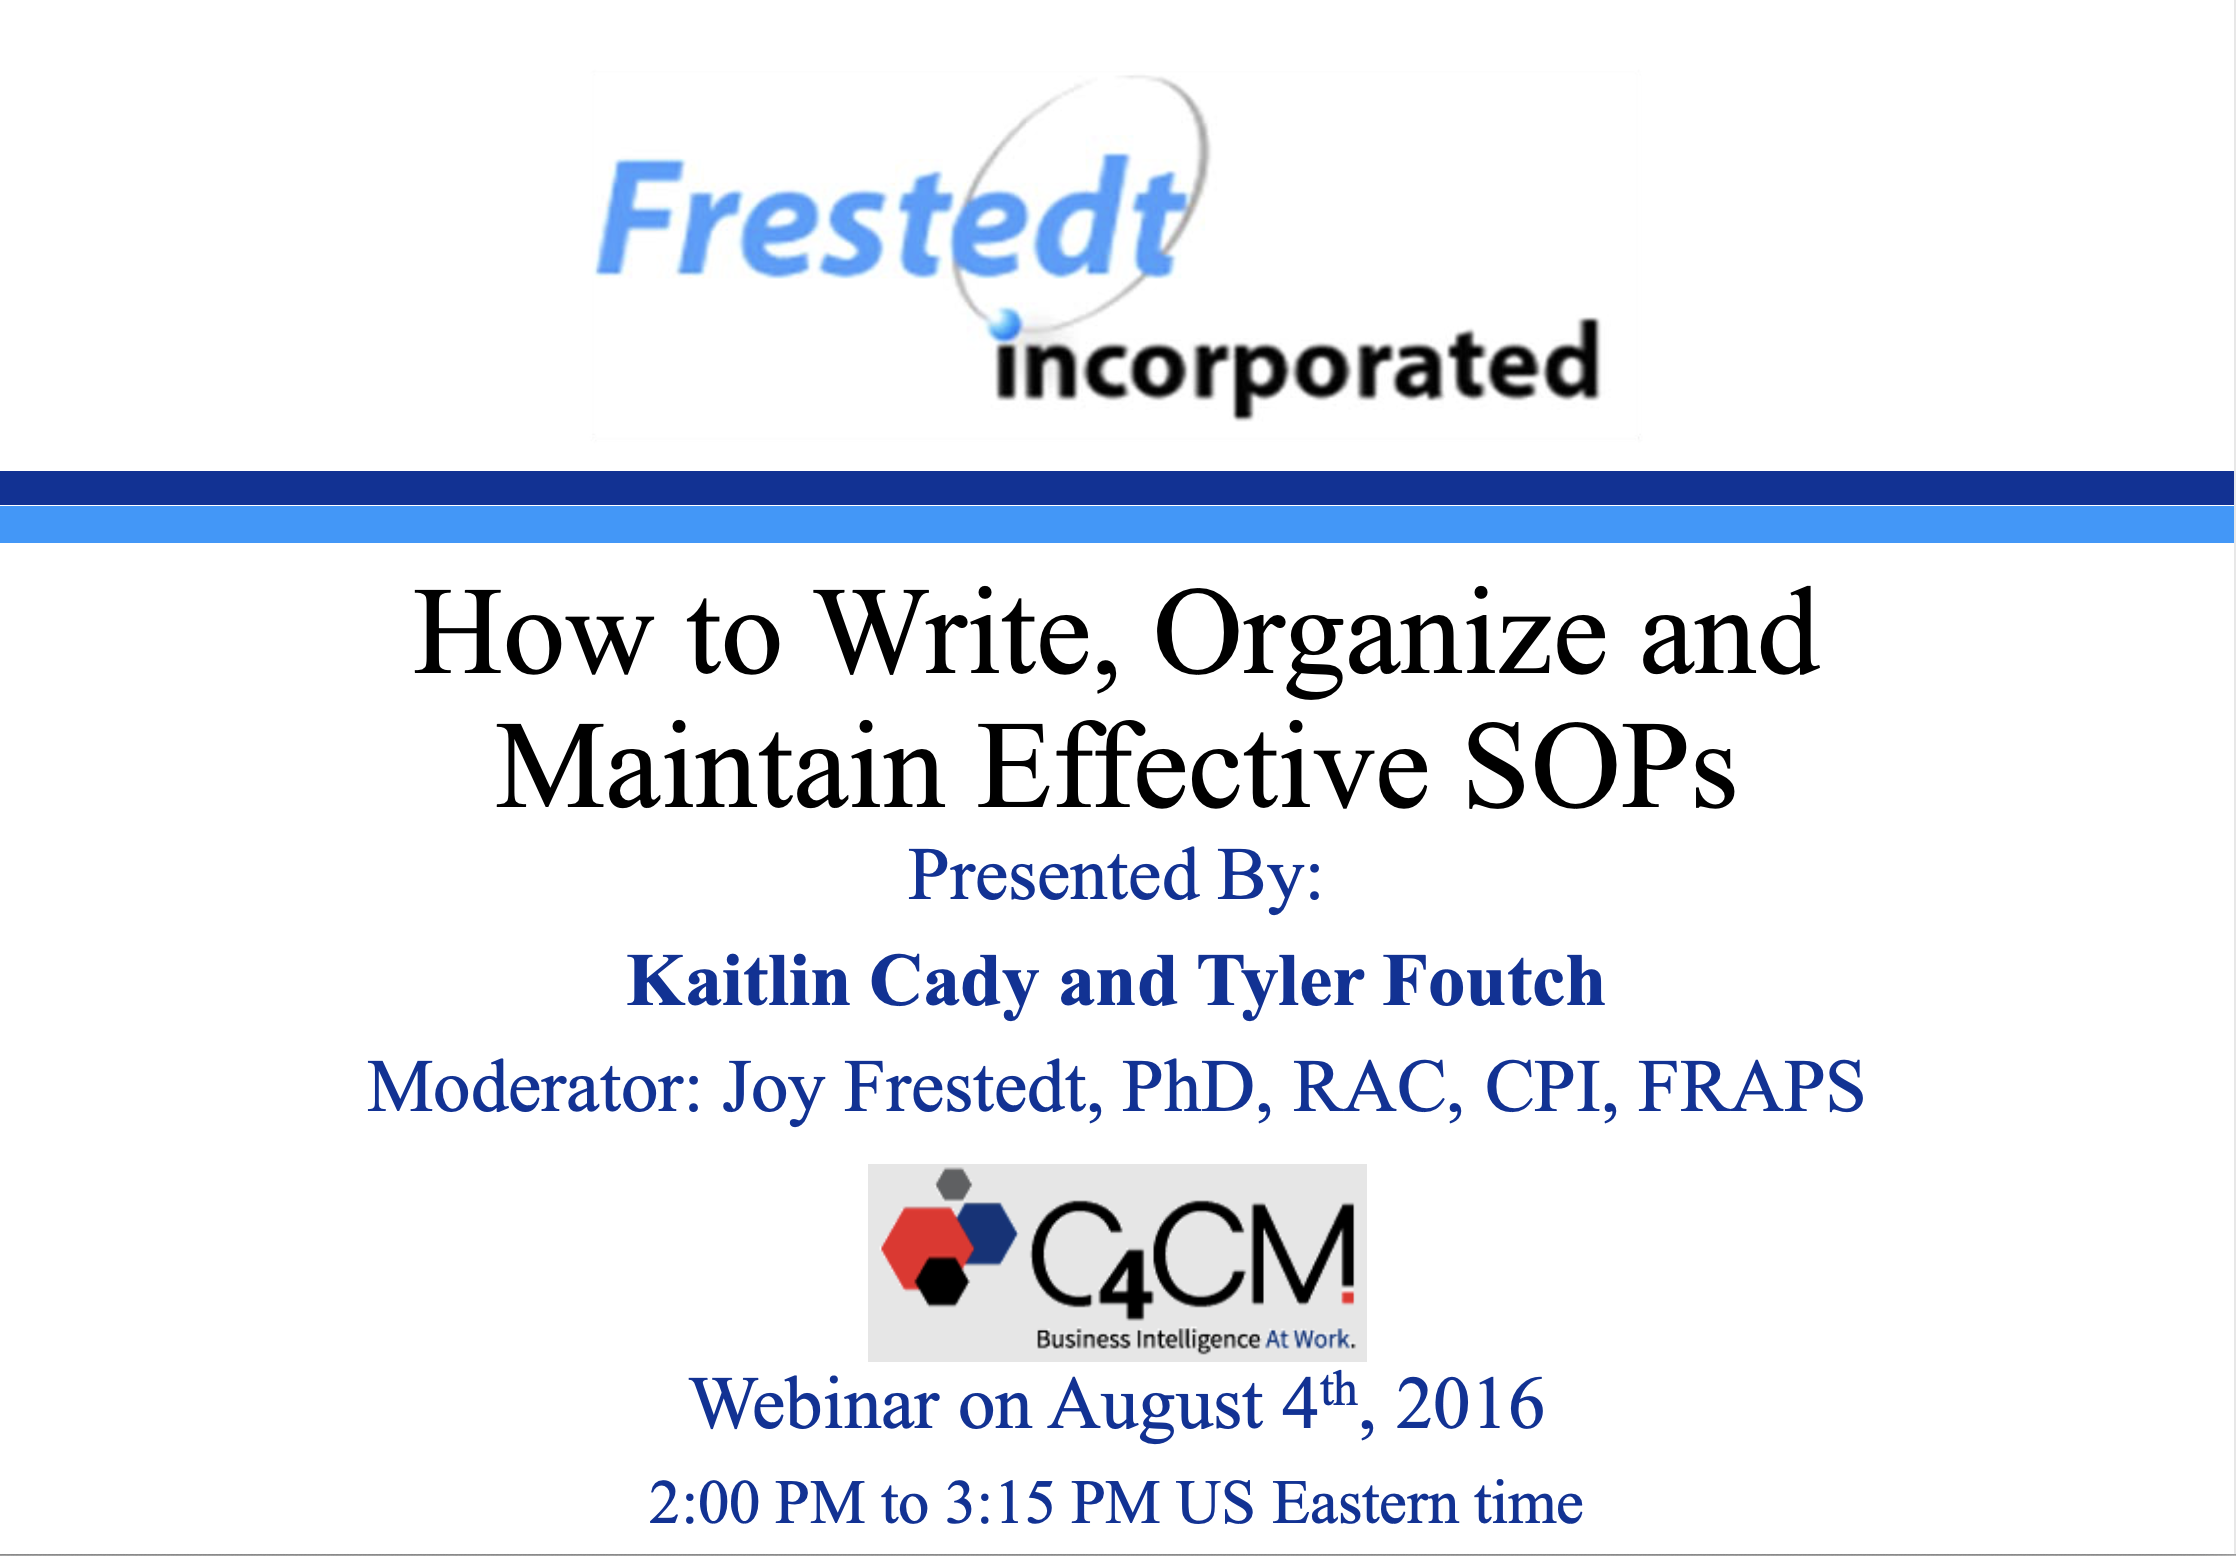 """Flyer for """"How to Write, Organize and Maintain Effective SOPs"""" talk"""